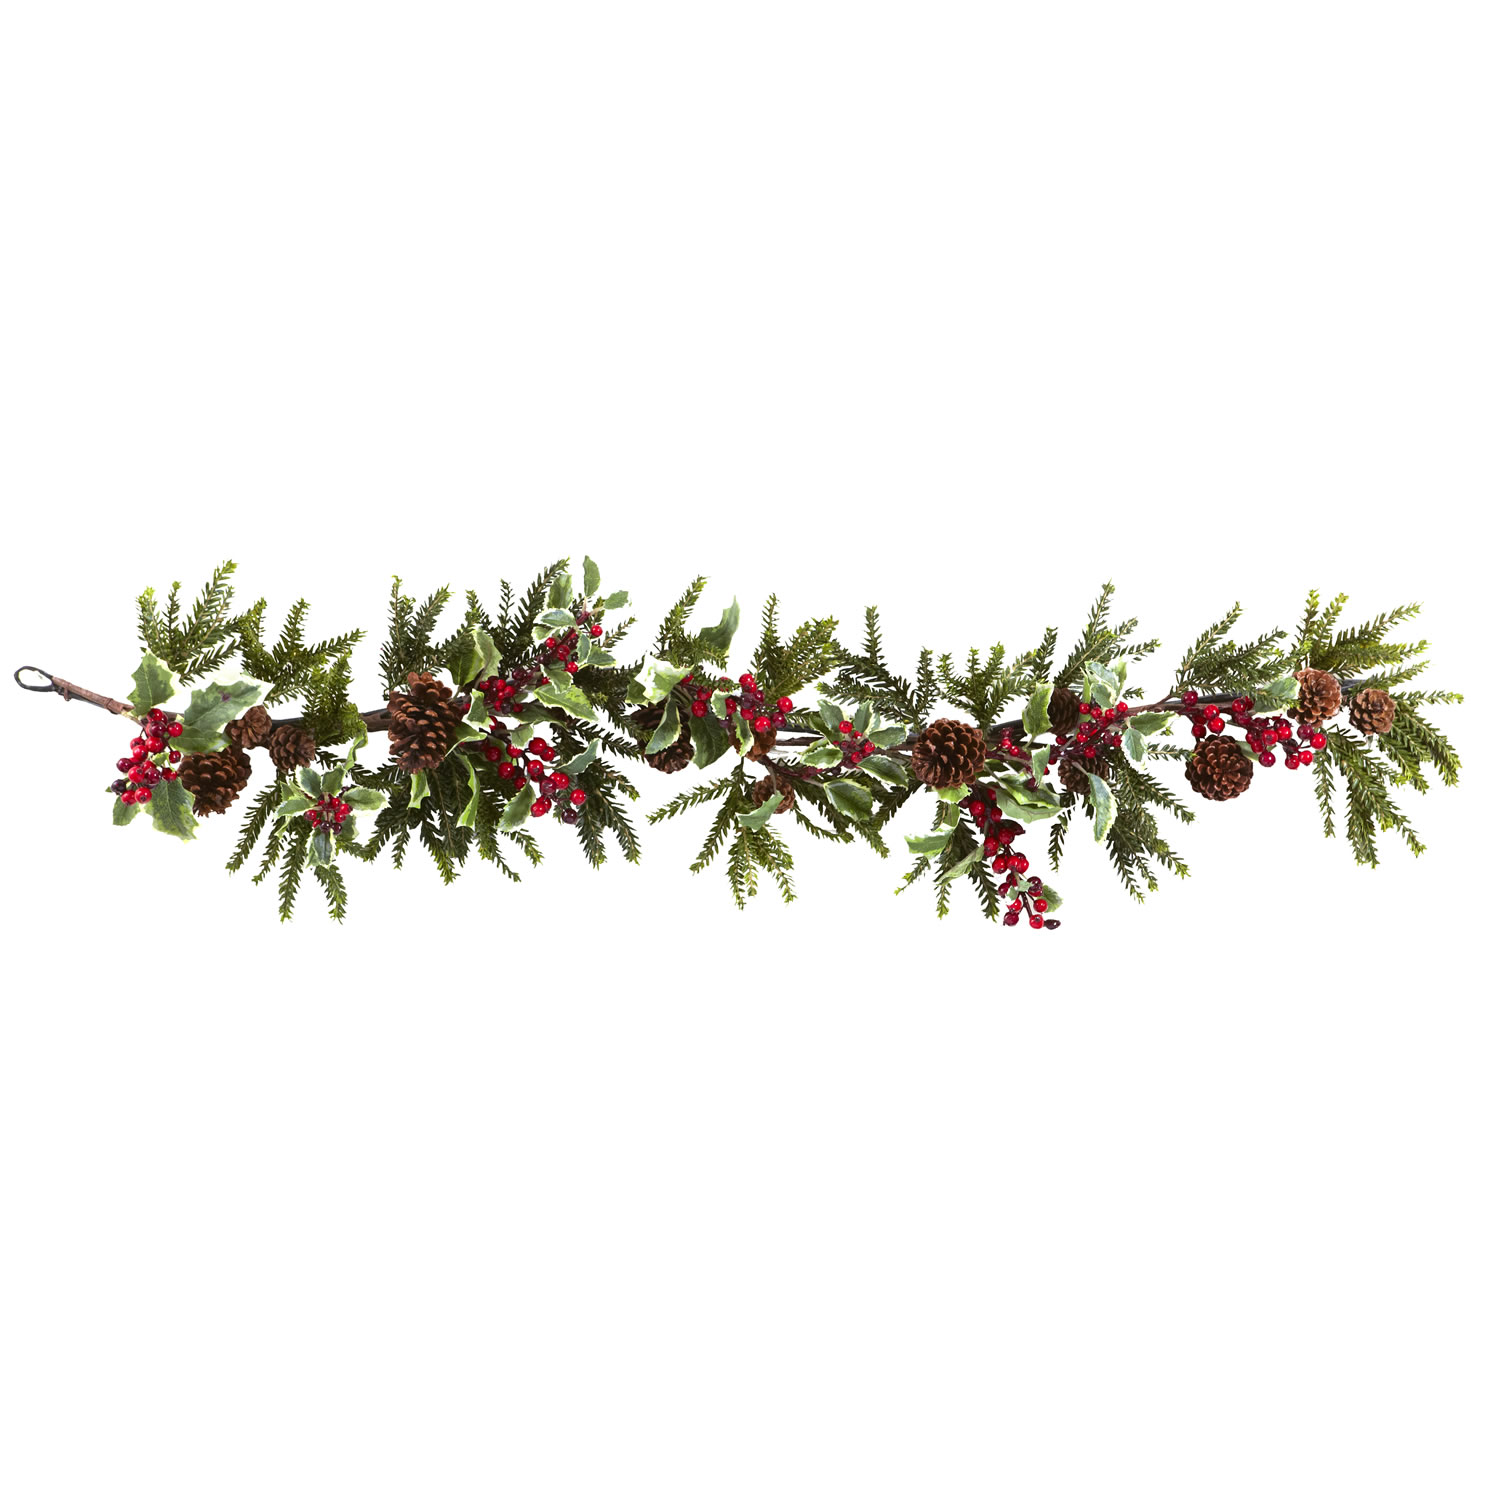 Free Pine Garland Cliparts, Download Free Clip Art, Free.